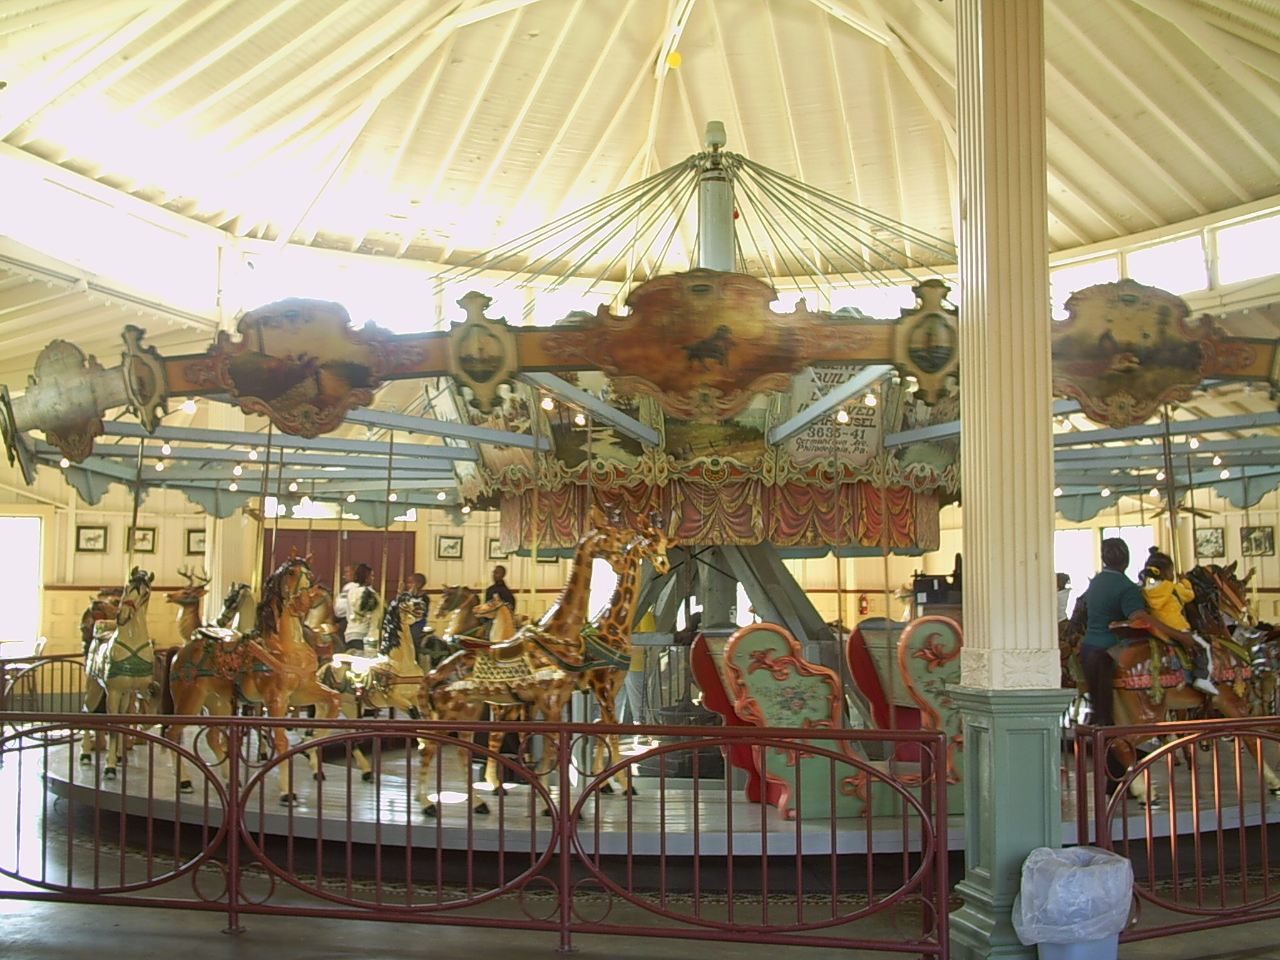 """Highland Park Dentzel Carousel 2"" by Dudemanfellabra at en.wikipedia. Licensed under CC BY-SA 3.0 via Wikimedia Commons - https://commons.wikimedia.org/wiki/File:Highland_Park_Dentzel_Carousel_2.JPG#/media/File:Highland_Park_Dentzel_Carousel_2.JPG"